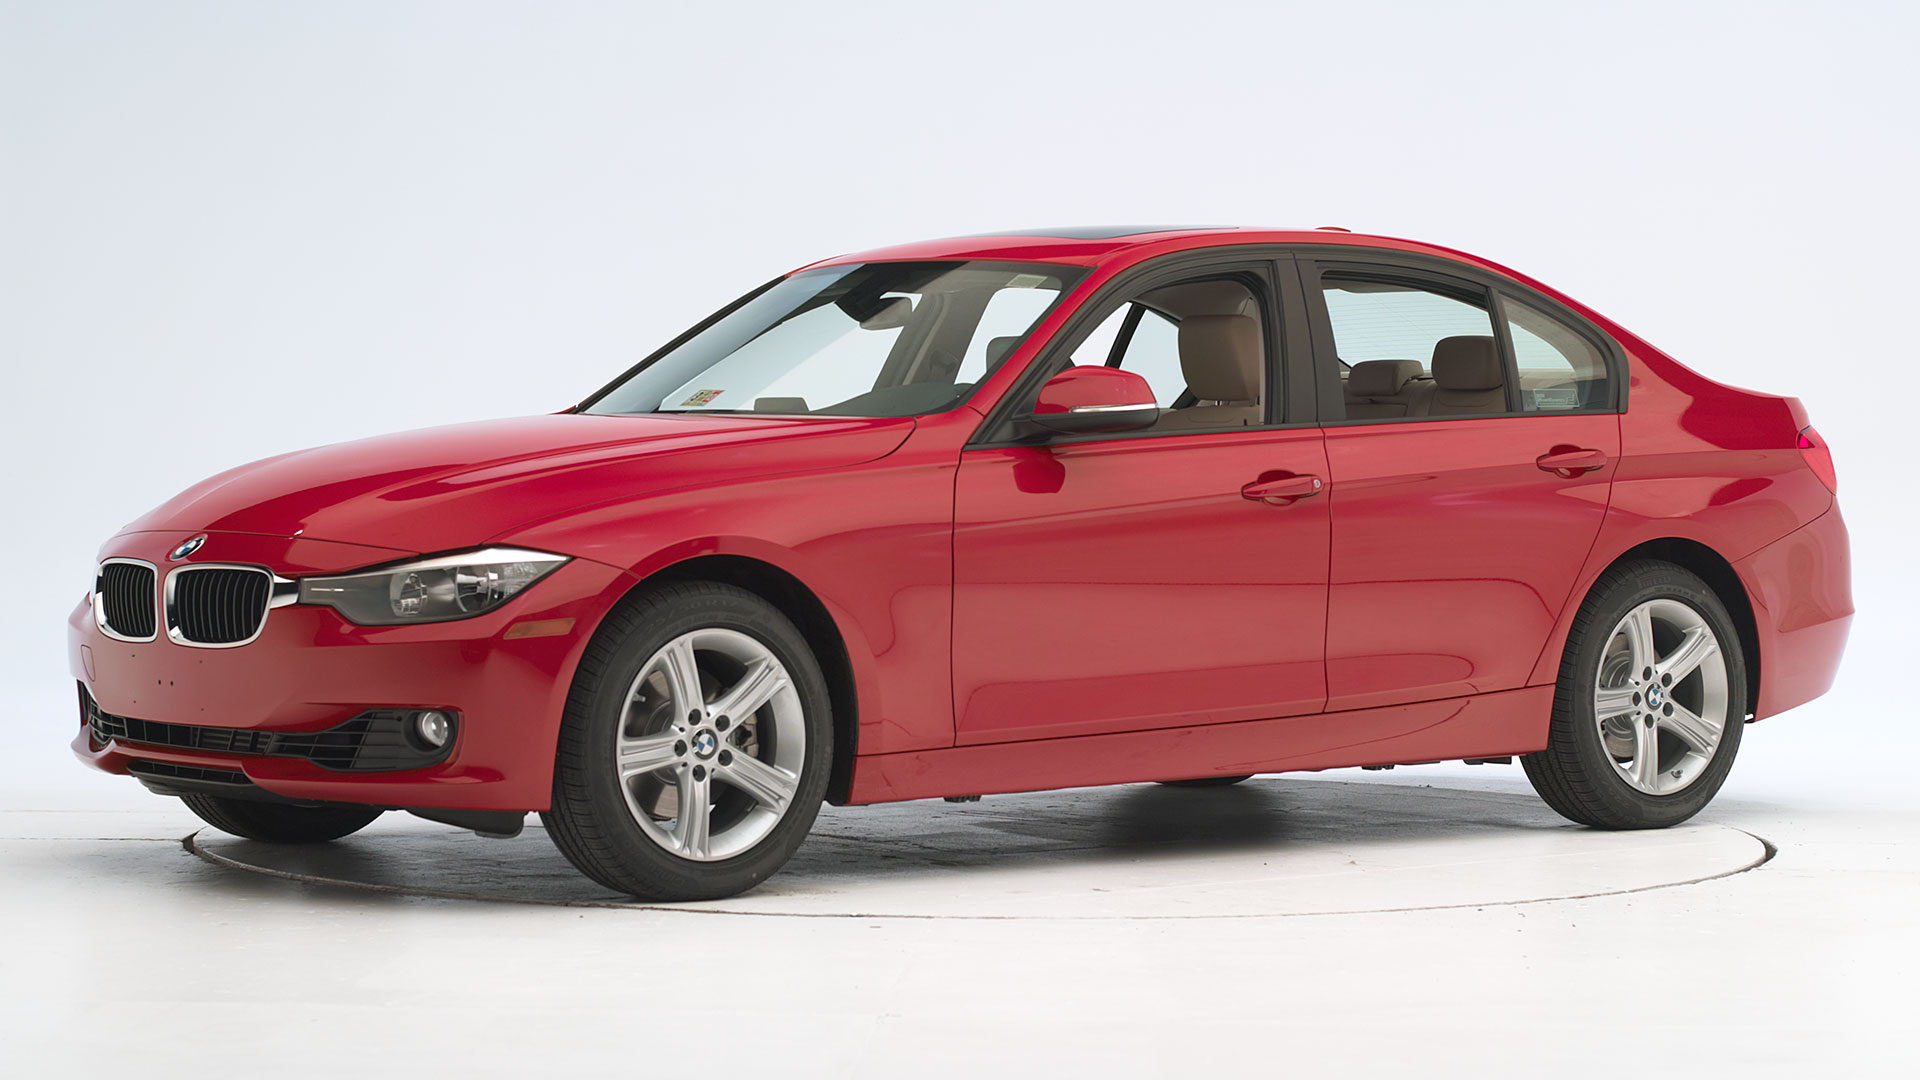 2012 BMW 3 series 4-door sedan